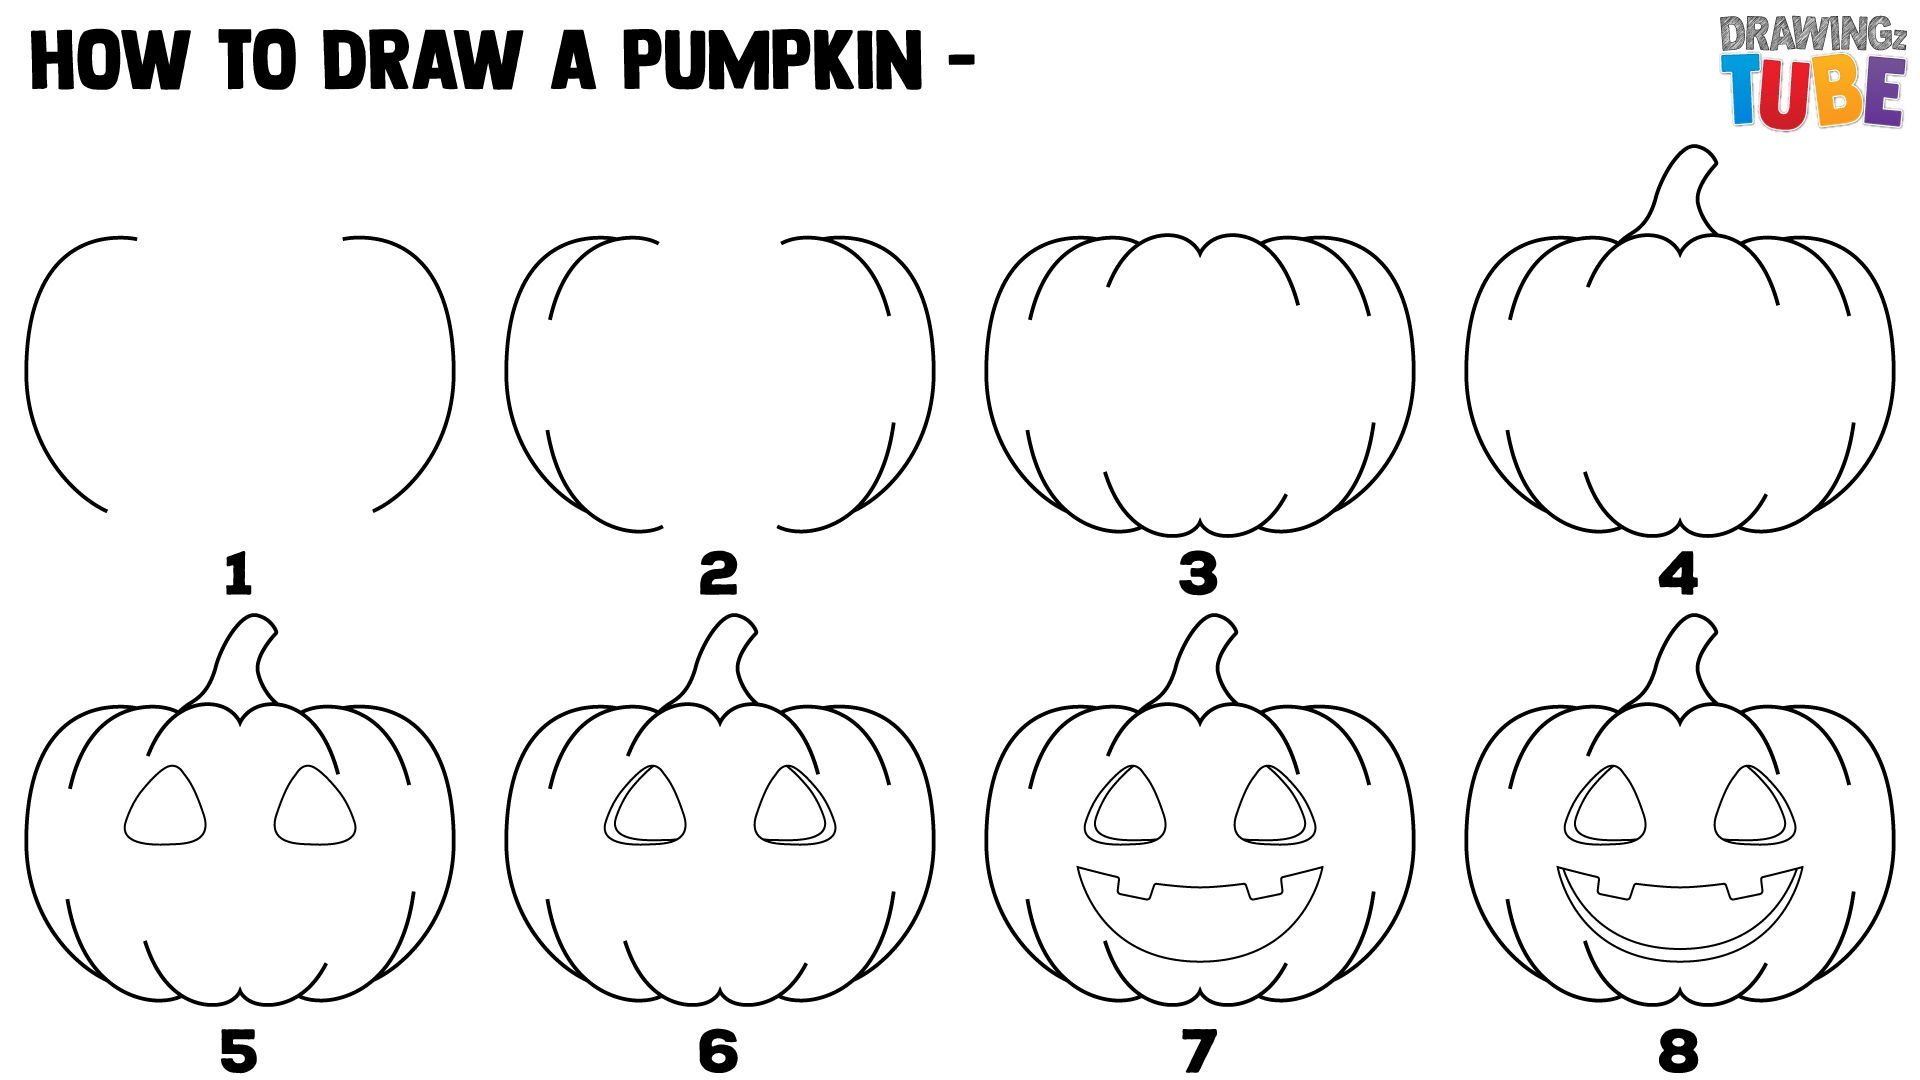 how to draw a punkin how to draw a halloween pumpkin for kids pumpkin drawing punkin draw a how to